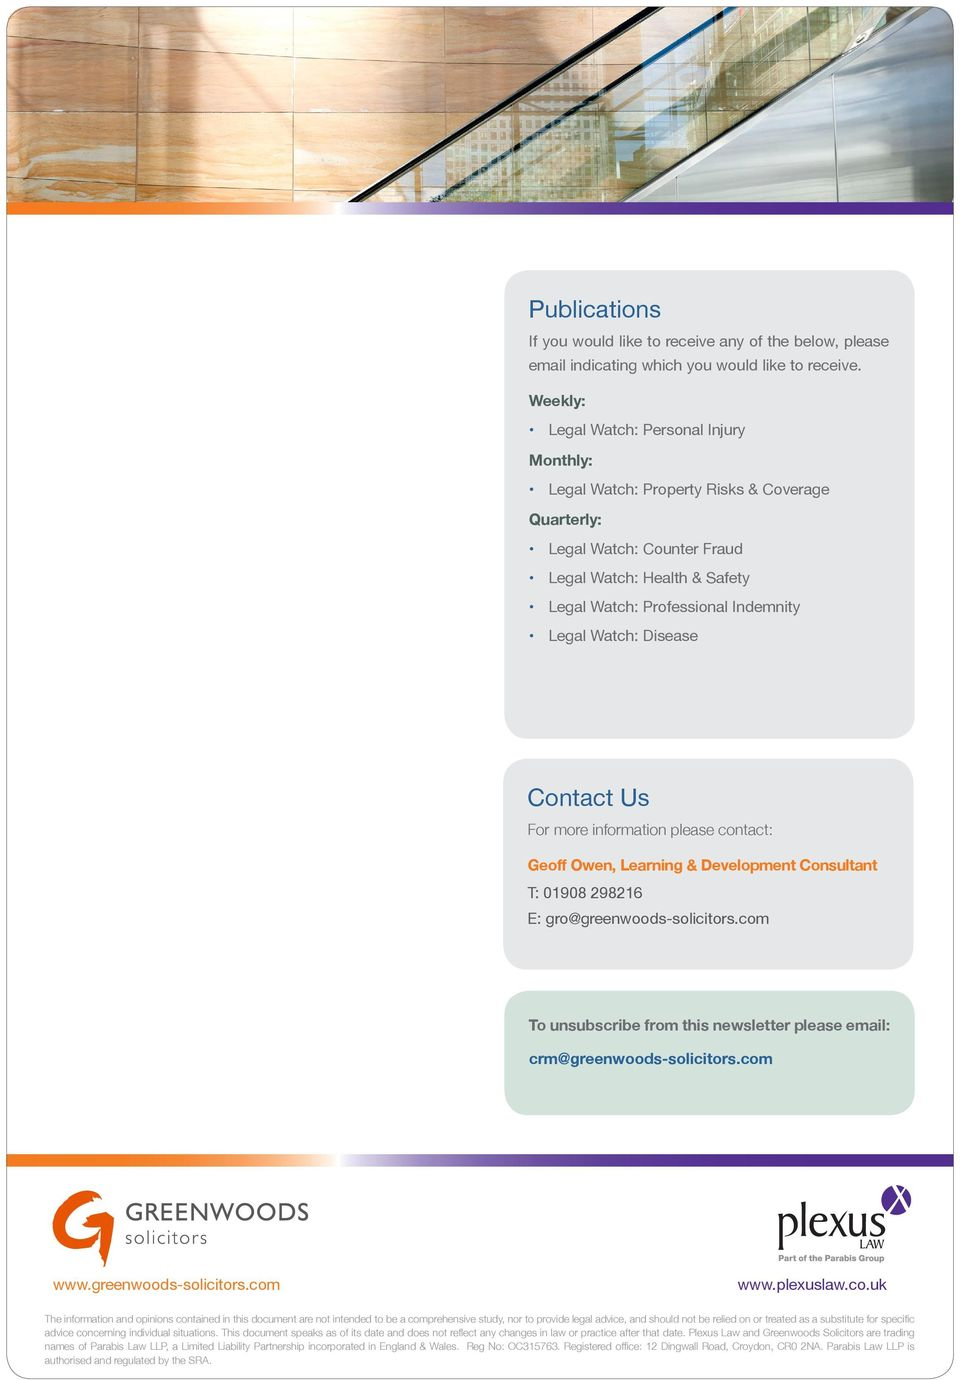 Watch: Disease Contact Us For more information please contact: Geoff Owen, Learning & Development Consultant T: 01908 298216 E: gro@greenwoods-solicitors.